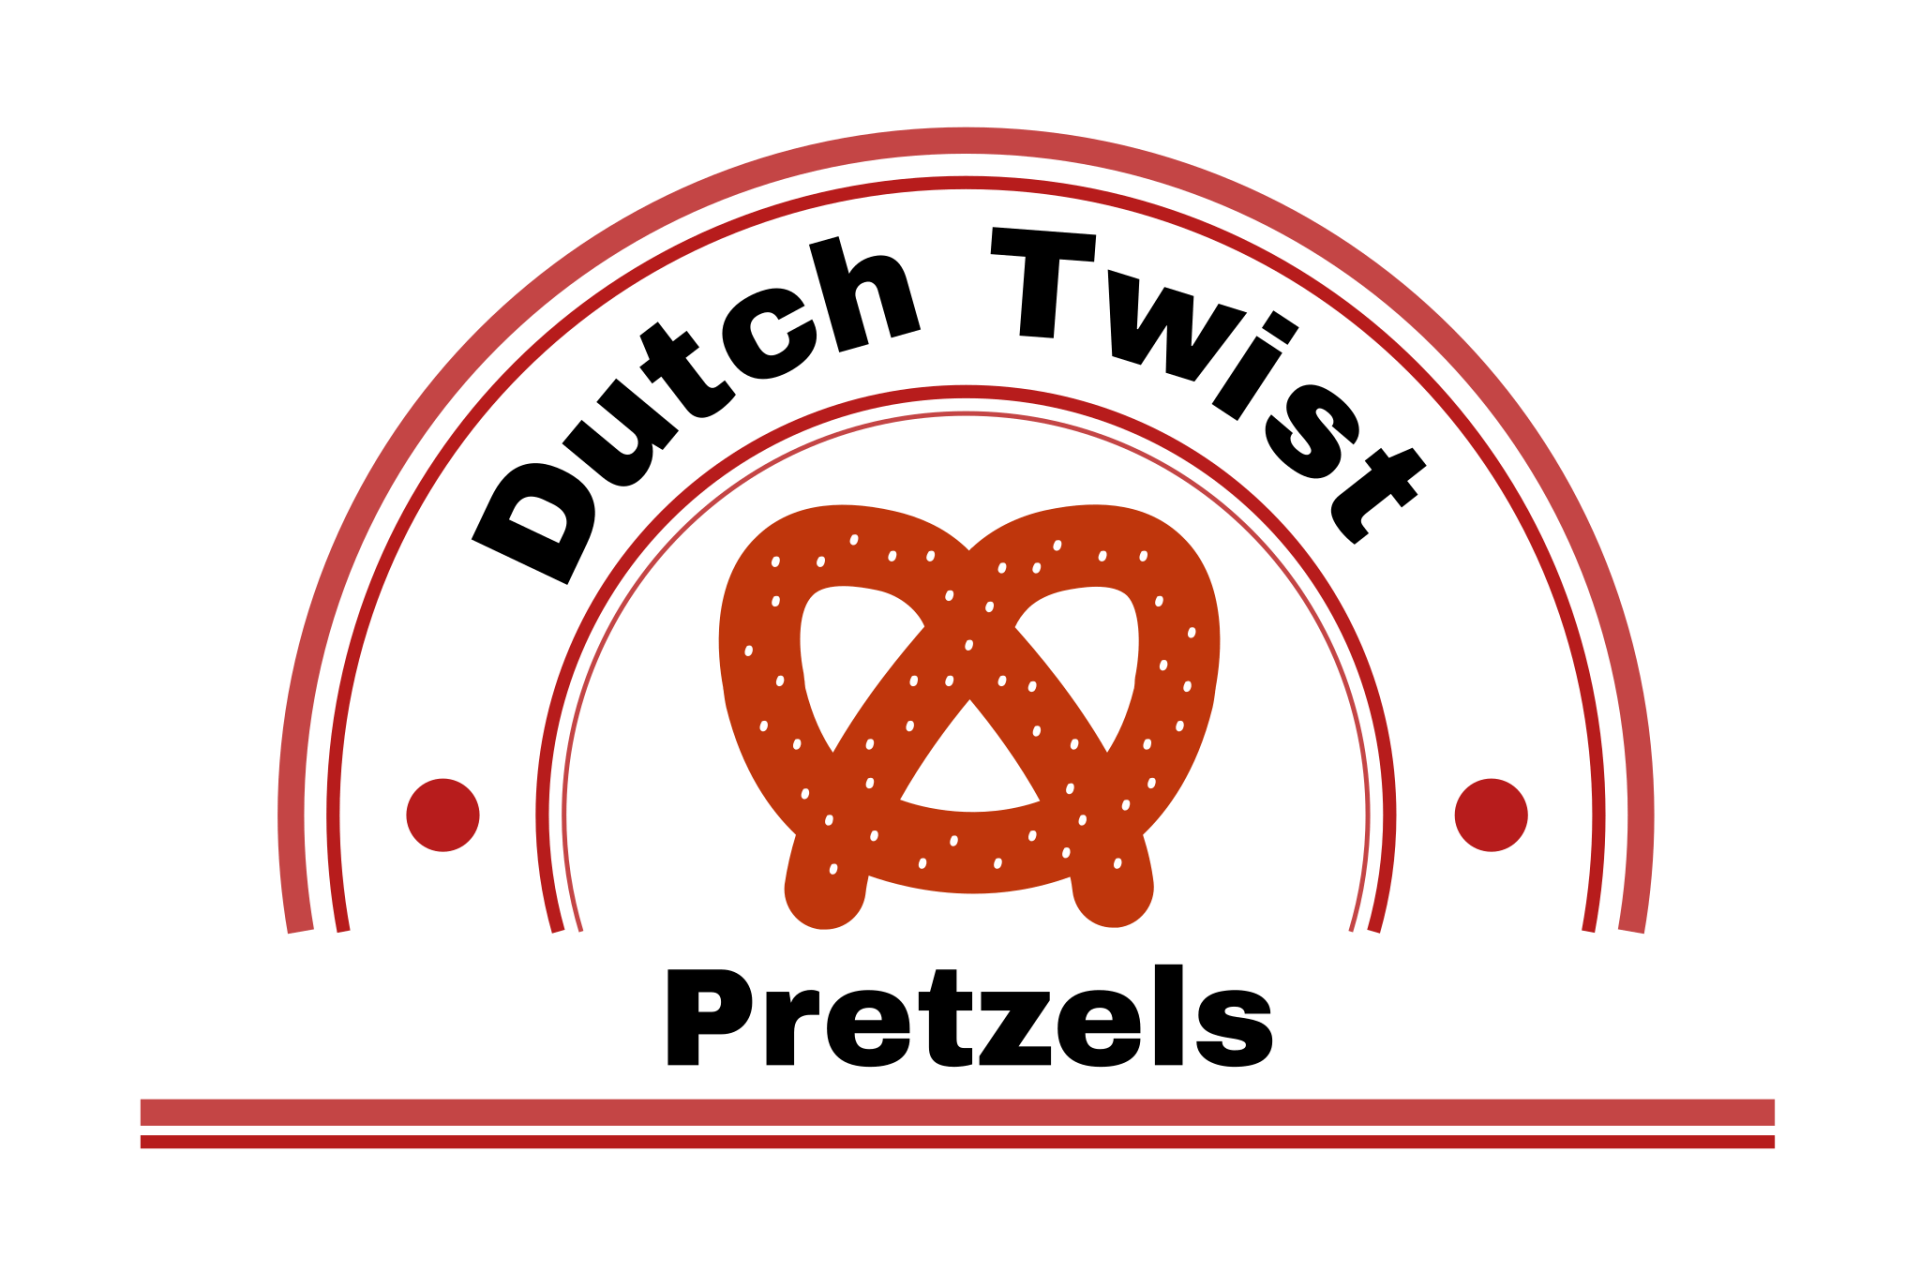 Dutch Twist logo